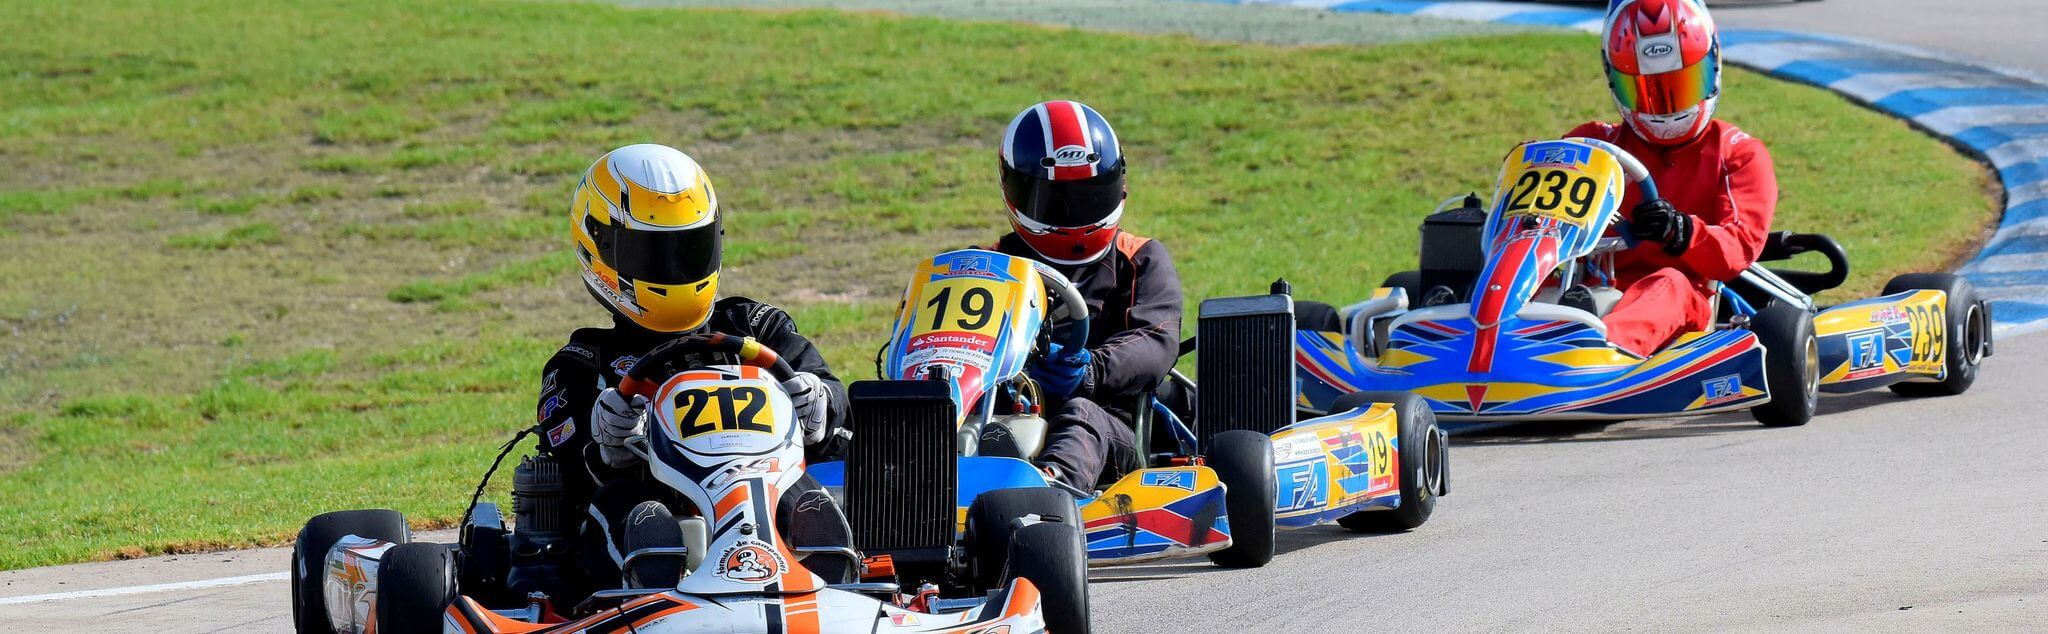 Karting in Canillo